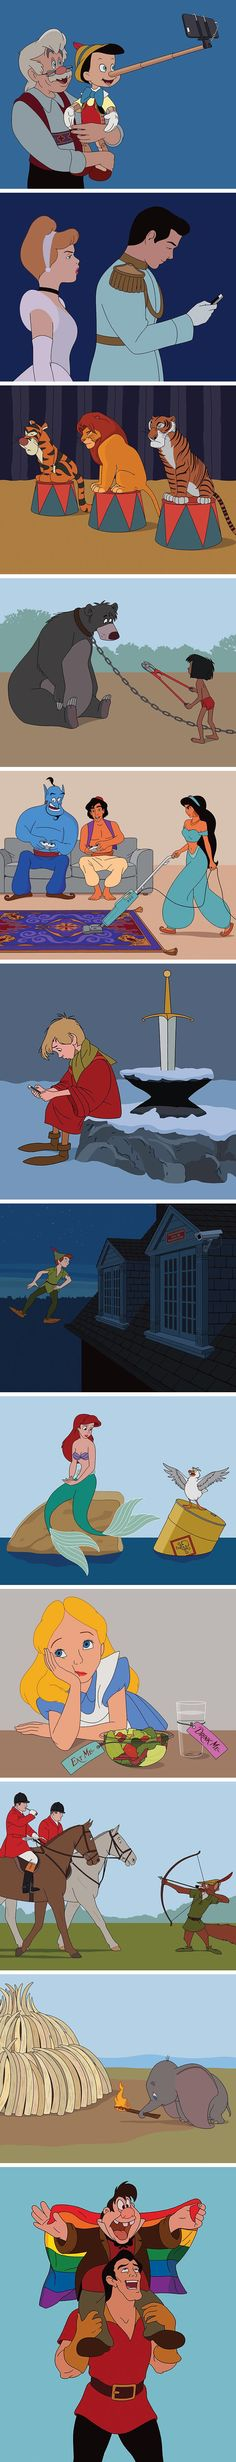 Artist imagines what Disney characters would look like in - Funniest Pictures Disney Princess Drawings, Disney Princess Pictures, Disney Pictures, Disney Drawings, Funny Pictures, Funny Disney Jokes, Disney Memes, Disney Quotes, Disney Theory